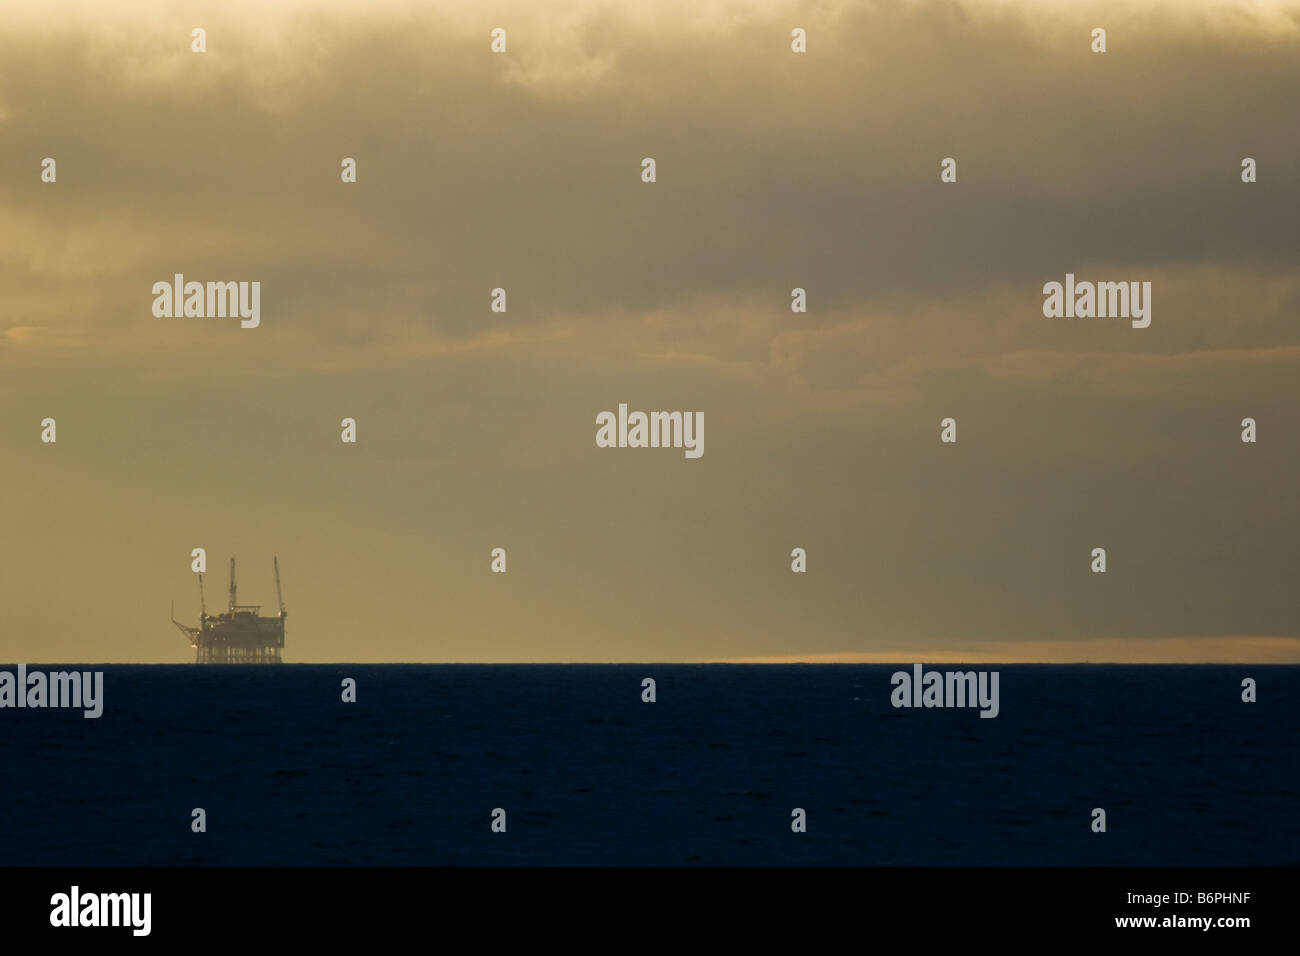 Oil platform in the Santa Barbara Channel. - Stock Image